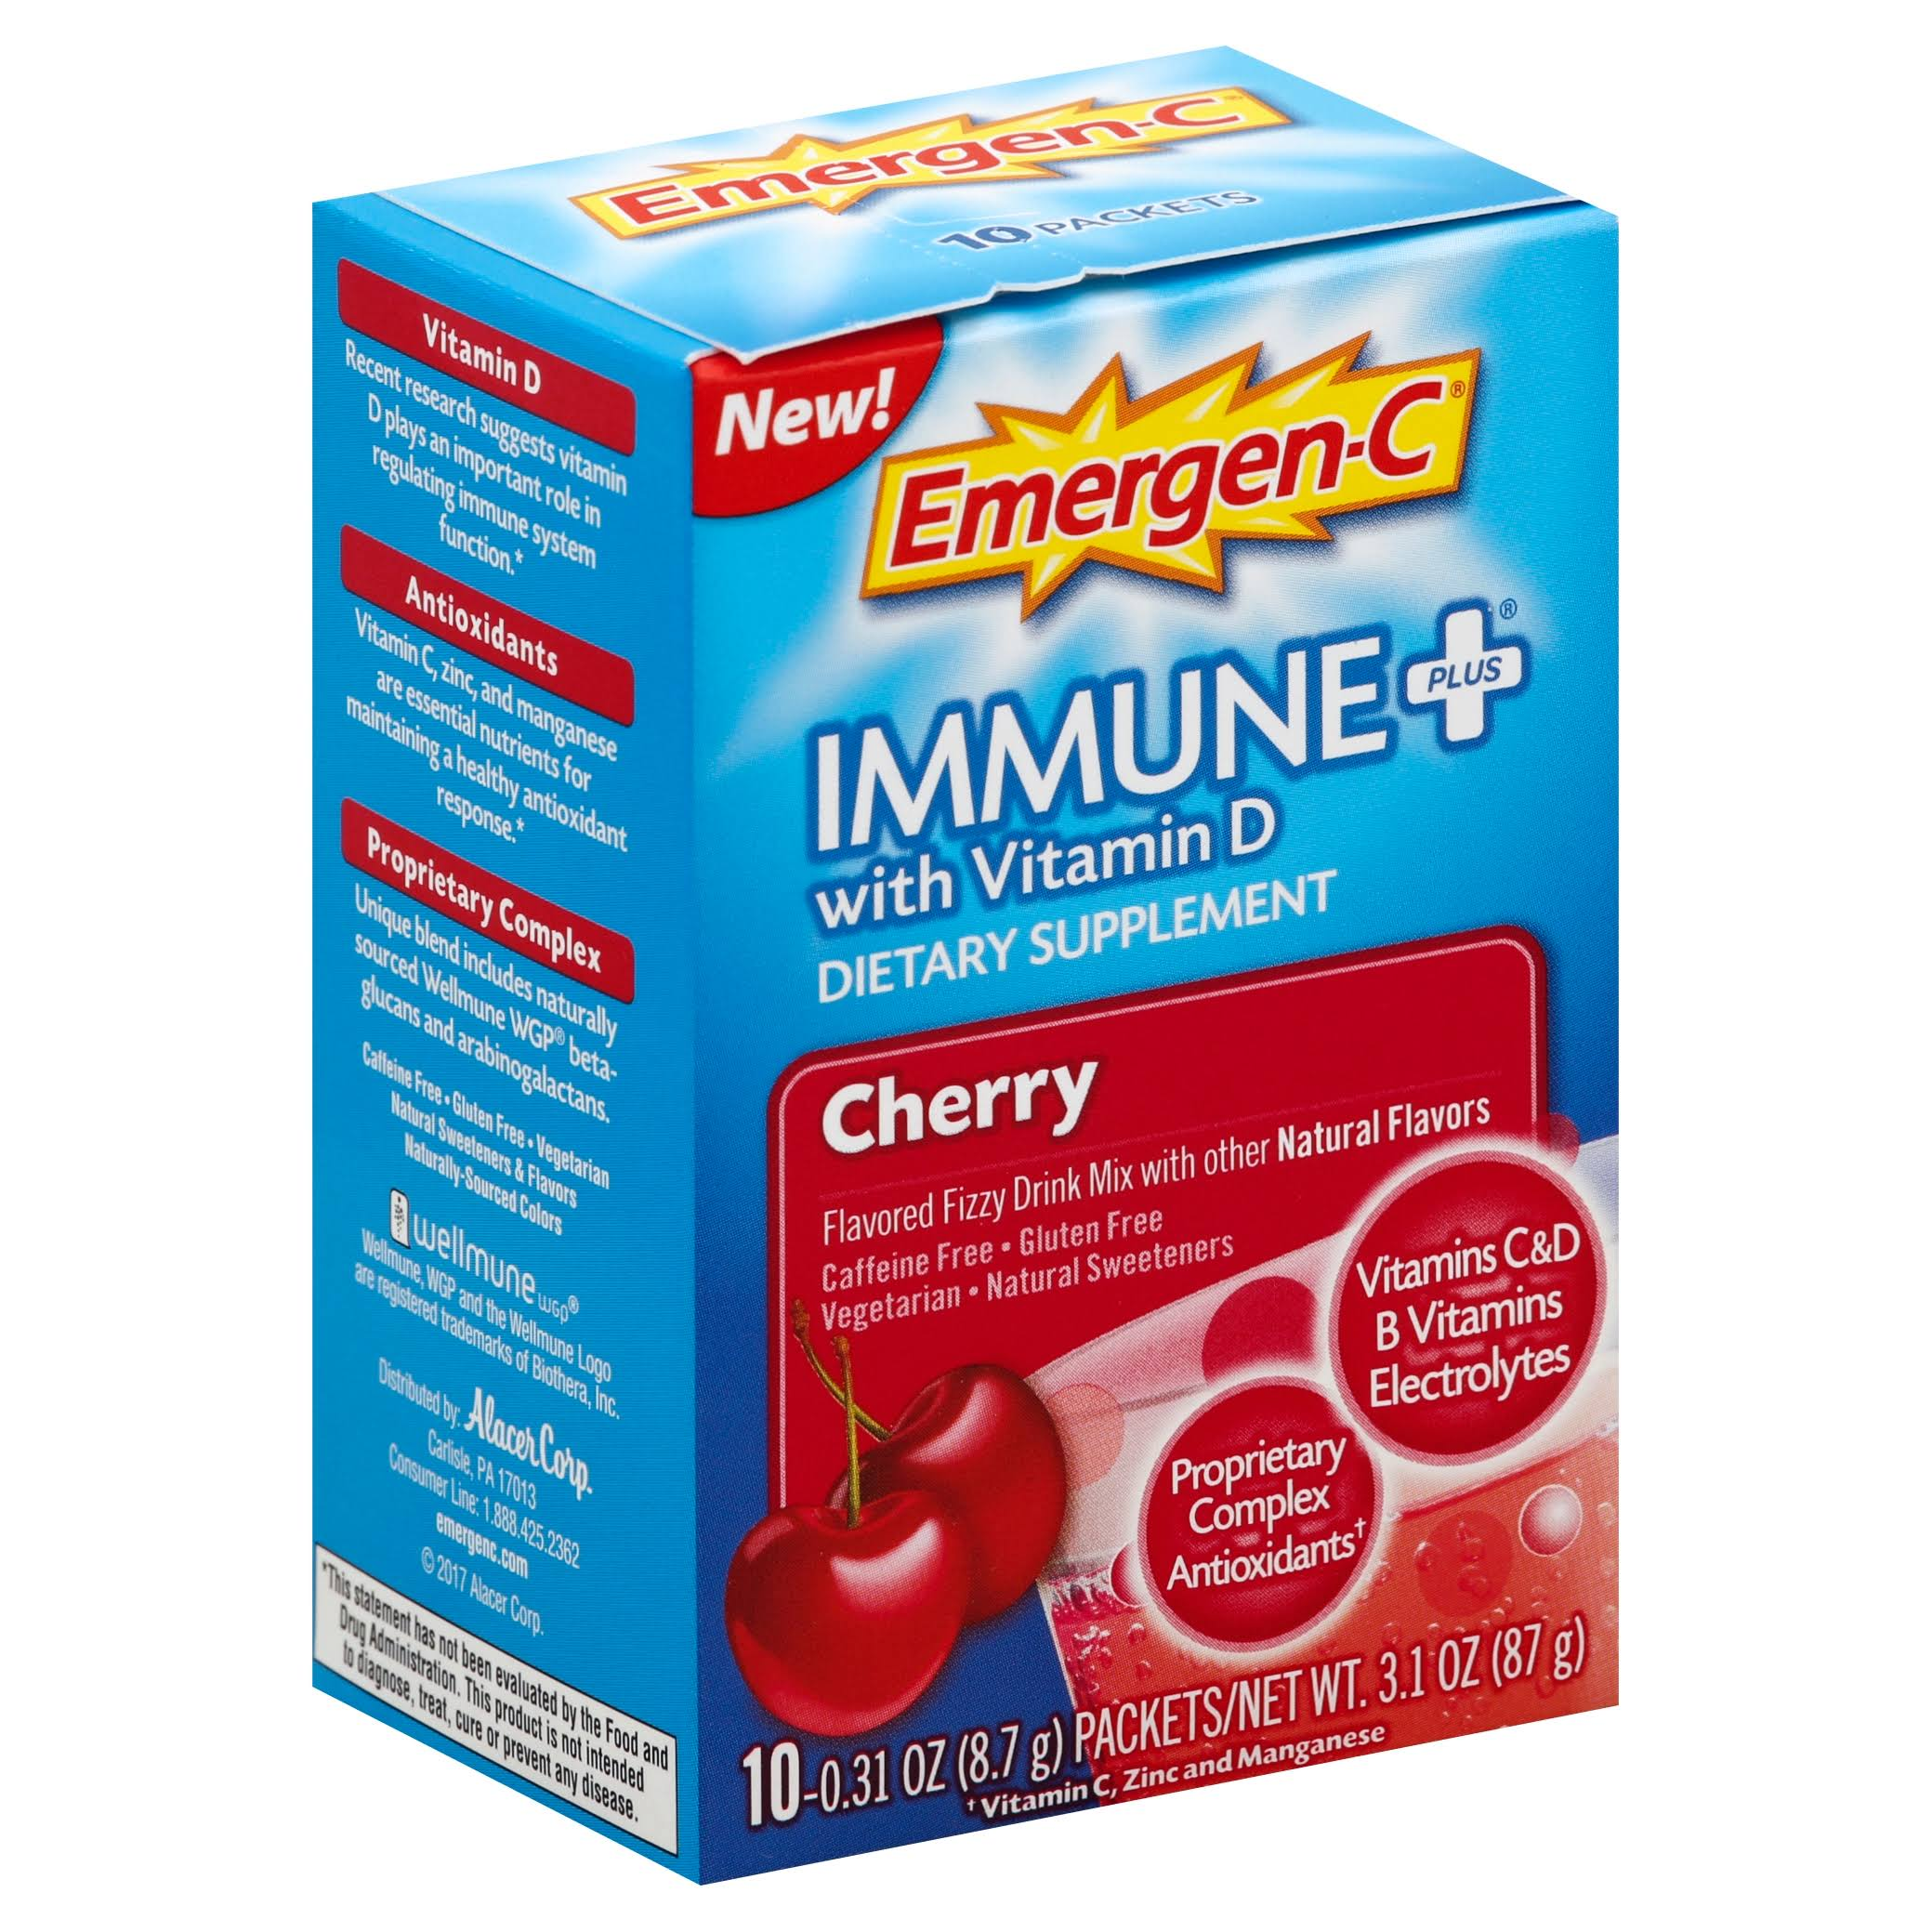 Emergen-C Immune Plus with Vitamin D Supplement - Cherry, 10 Packets, 0.31oz